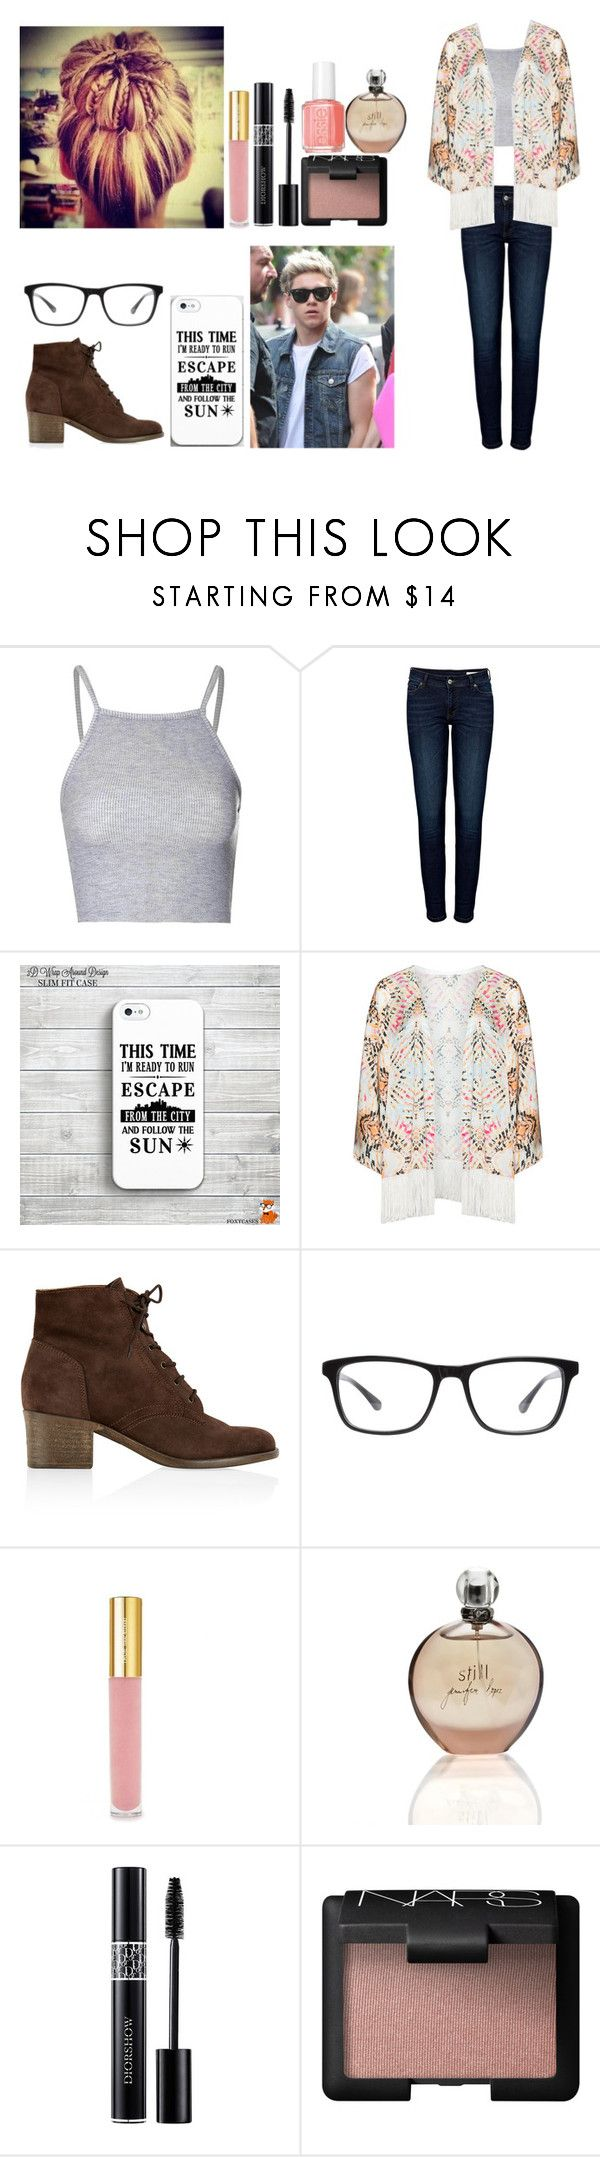 """Festival w/ Niall"" by depystyles13 ❤ liked on Polyvore featuring Glamorous, Anine Bing, Mat, Monsoon, Joseph Marc, Isaac Mizrahi, JLo by Jennifer Lopez, Christian Dior, NARS Cosmetics and Essie"